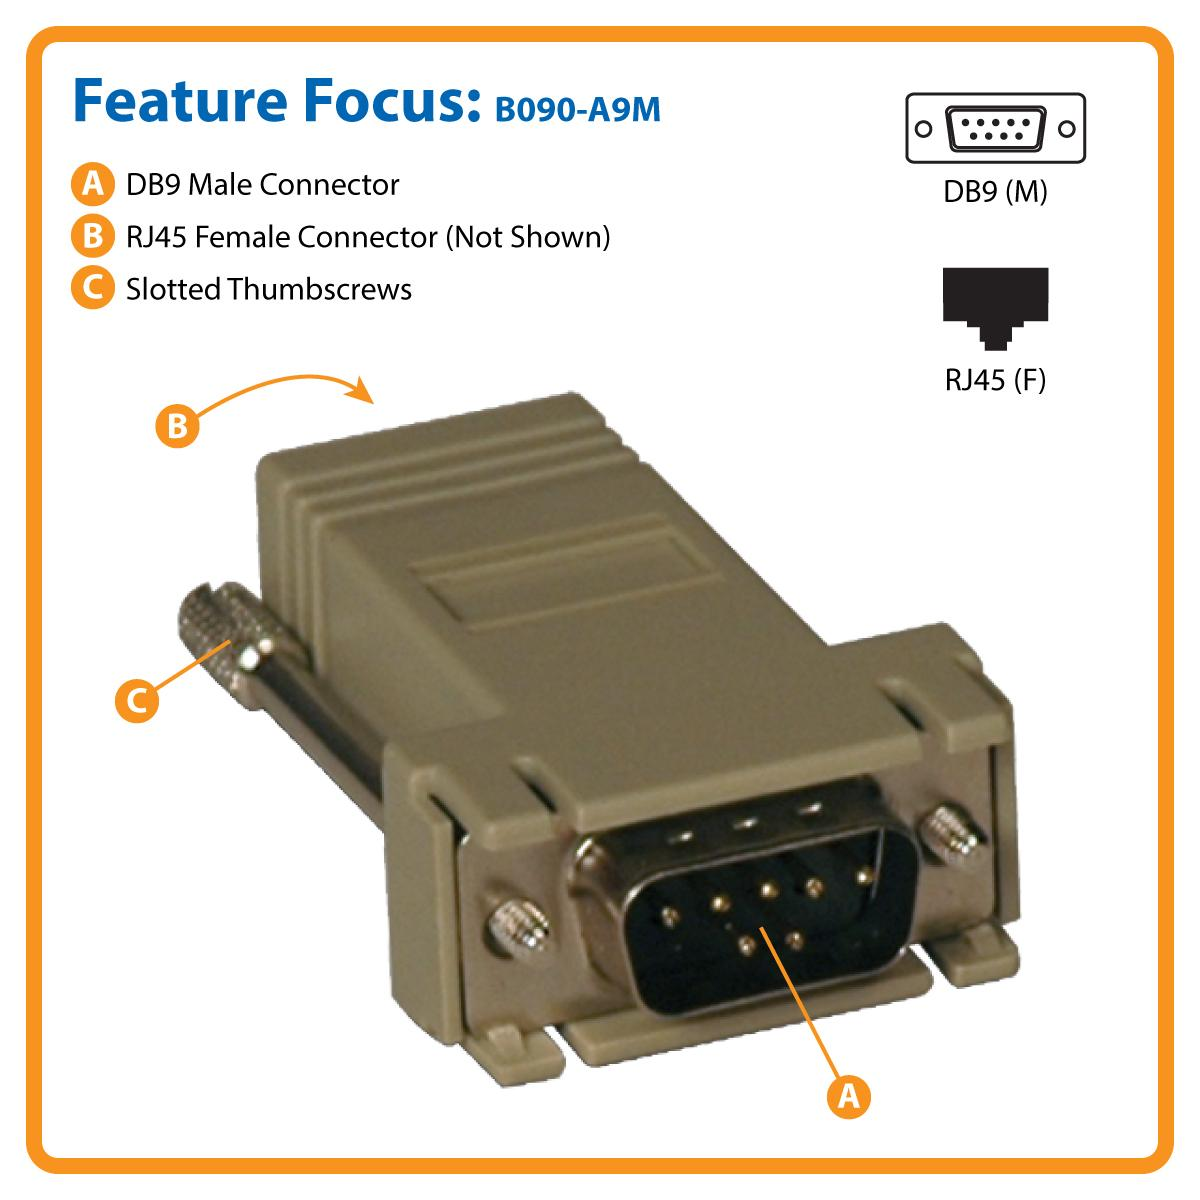 Tripp Lite Modular Serial Adapter Cisco Rj45 F To Db9 Connector Wiring Secure Connection Lifetime Warranty And Environmentally Responsible Design